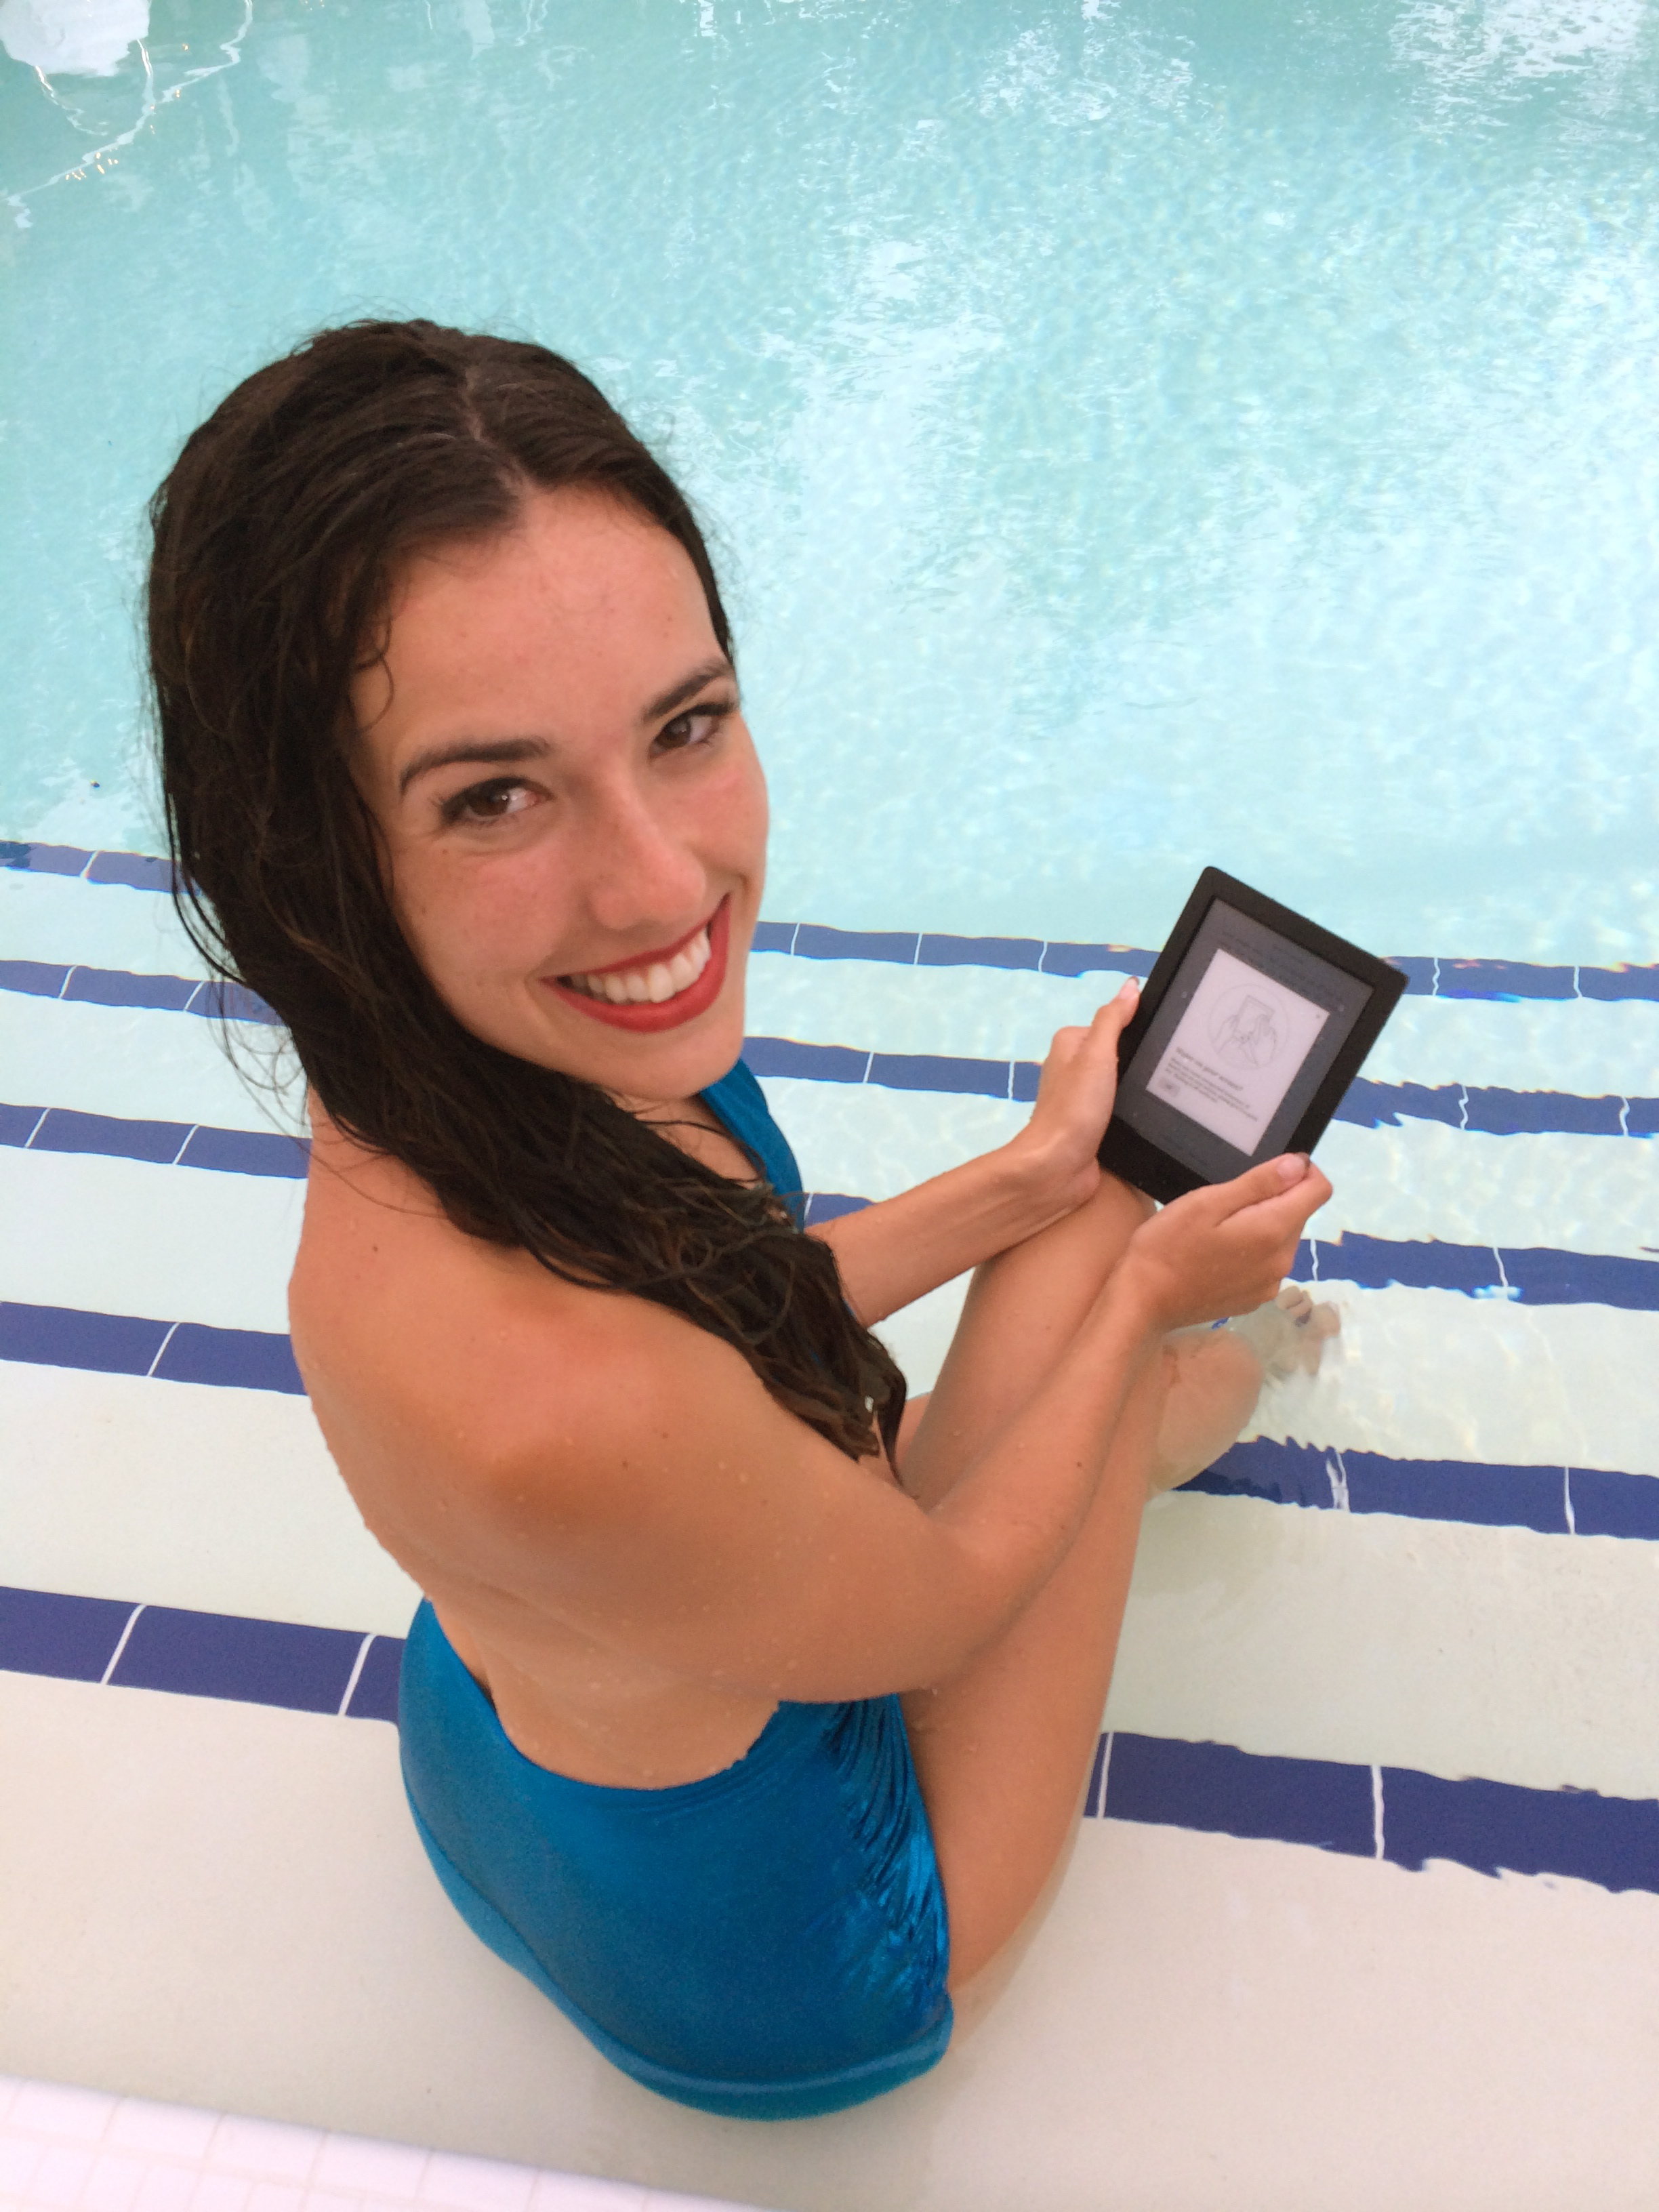 Making A Splash With The KOBO Aura H2O